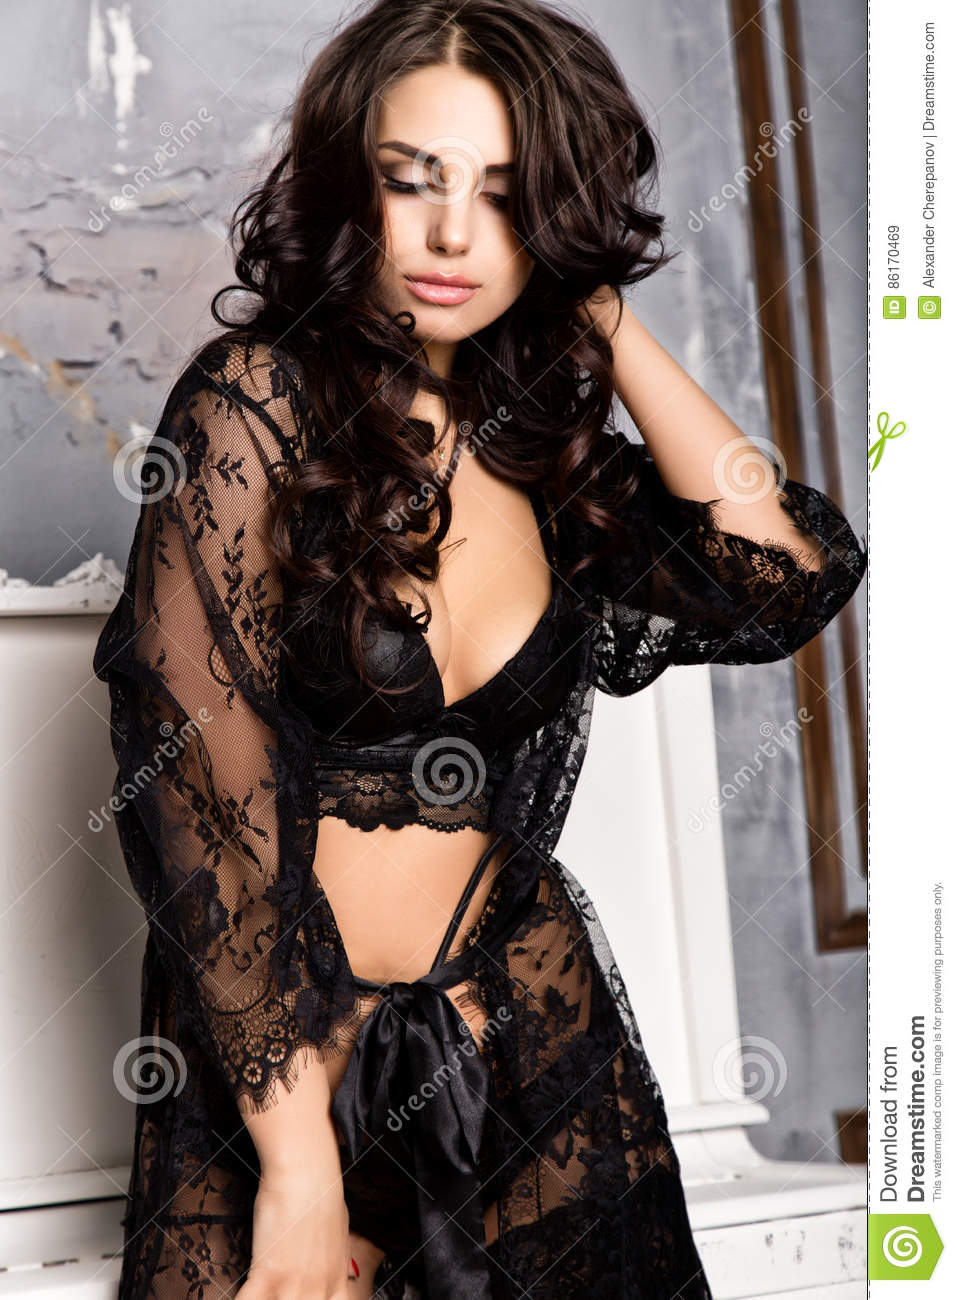 c325b26890e Fashion young woman in black lacy lingerie and stockings posing on piano